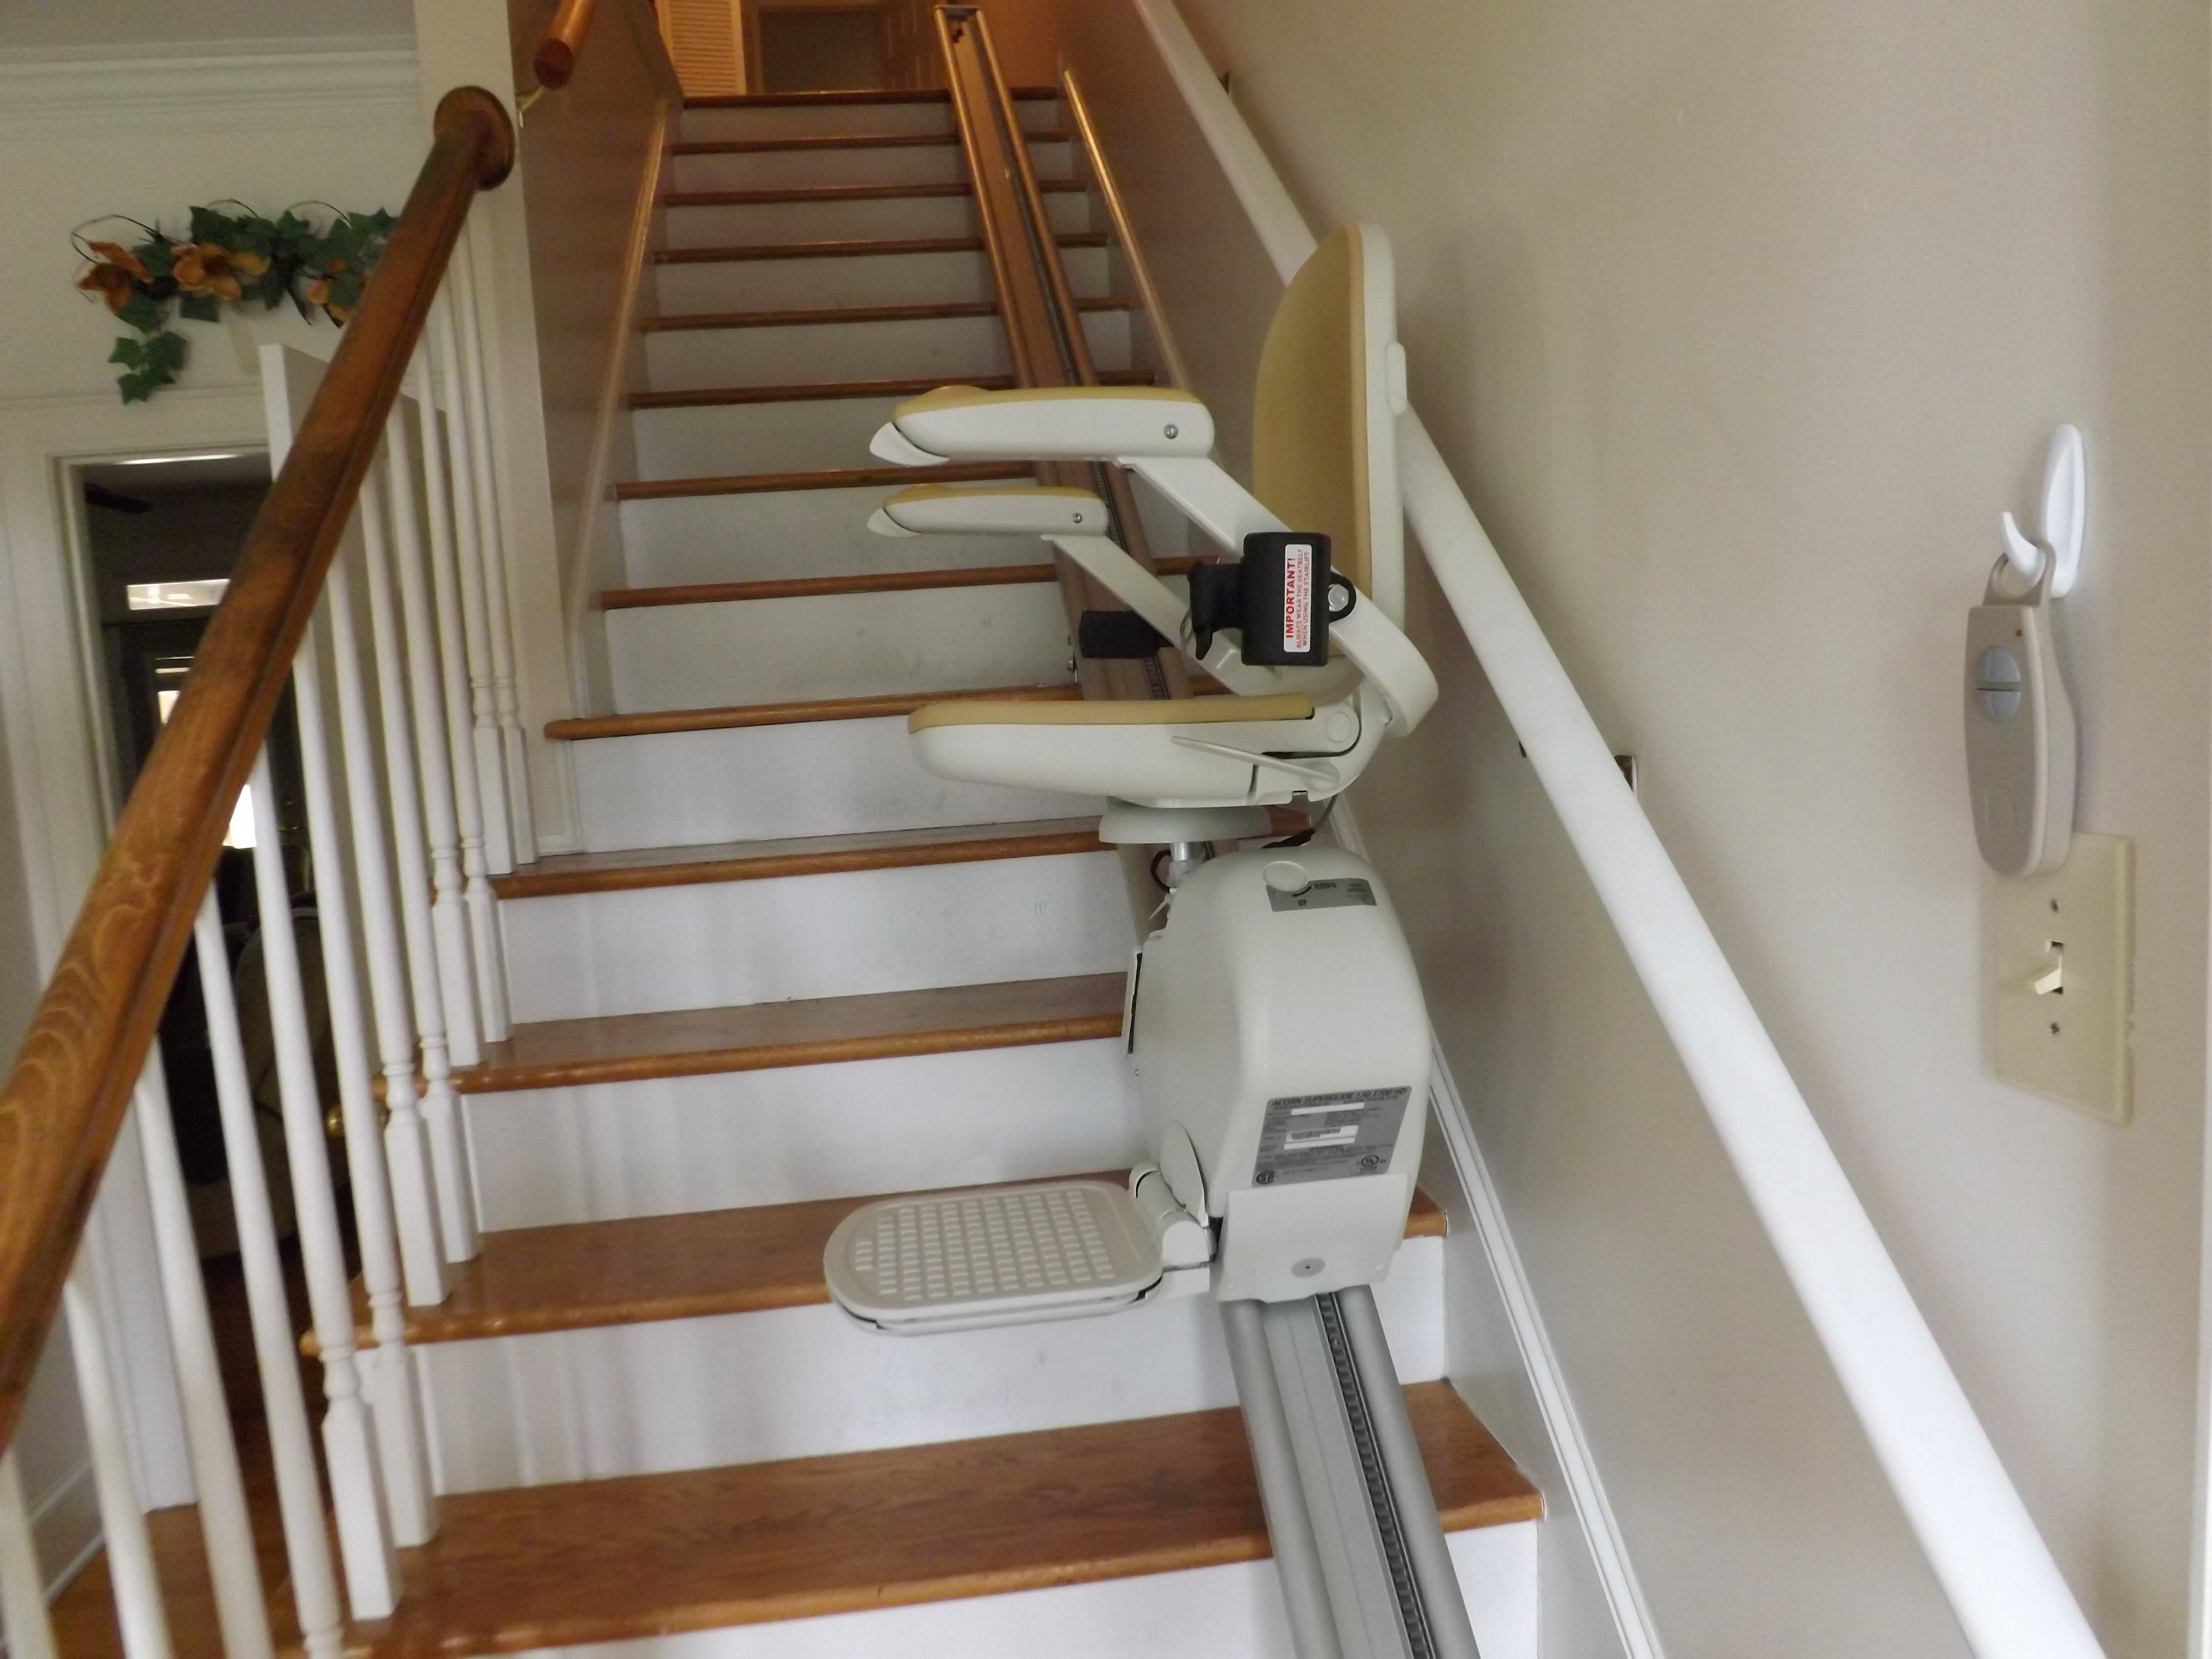 Photo 2 of Stairlift